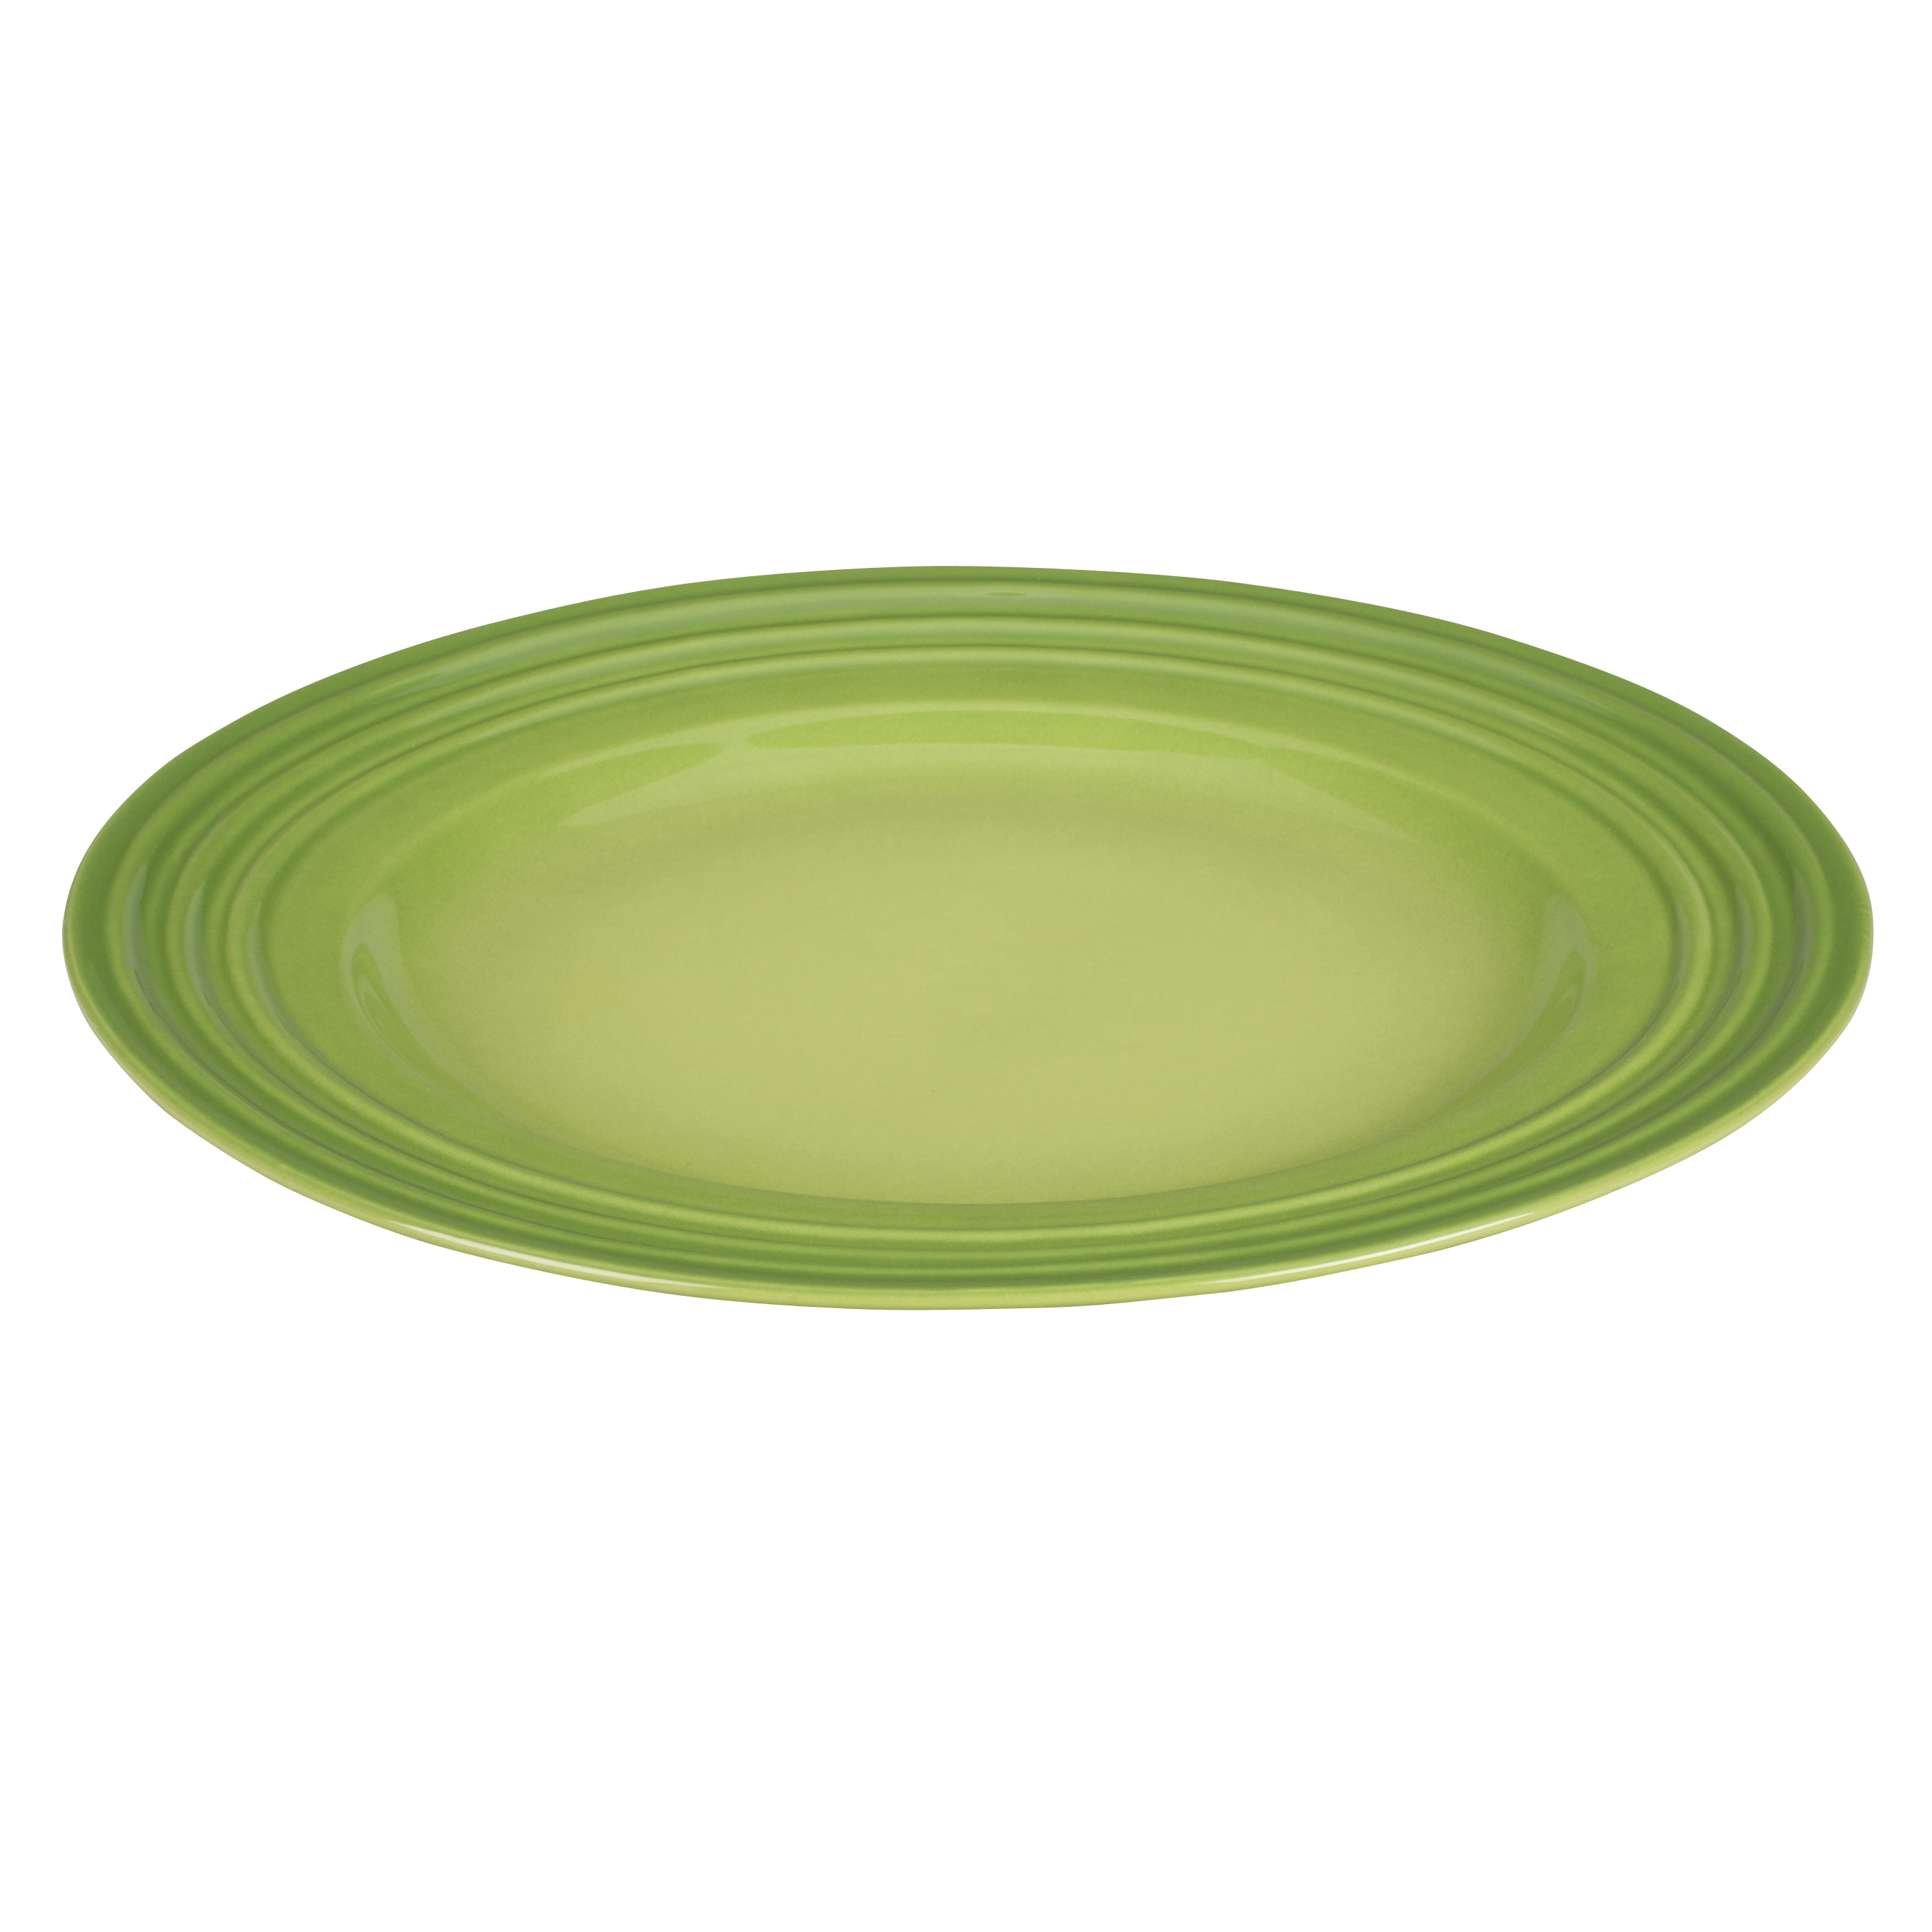 Le Creuset Palm Stoneware Dinner Plate, 12 Inch